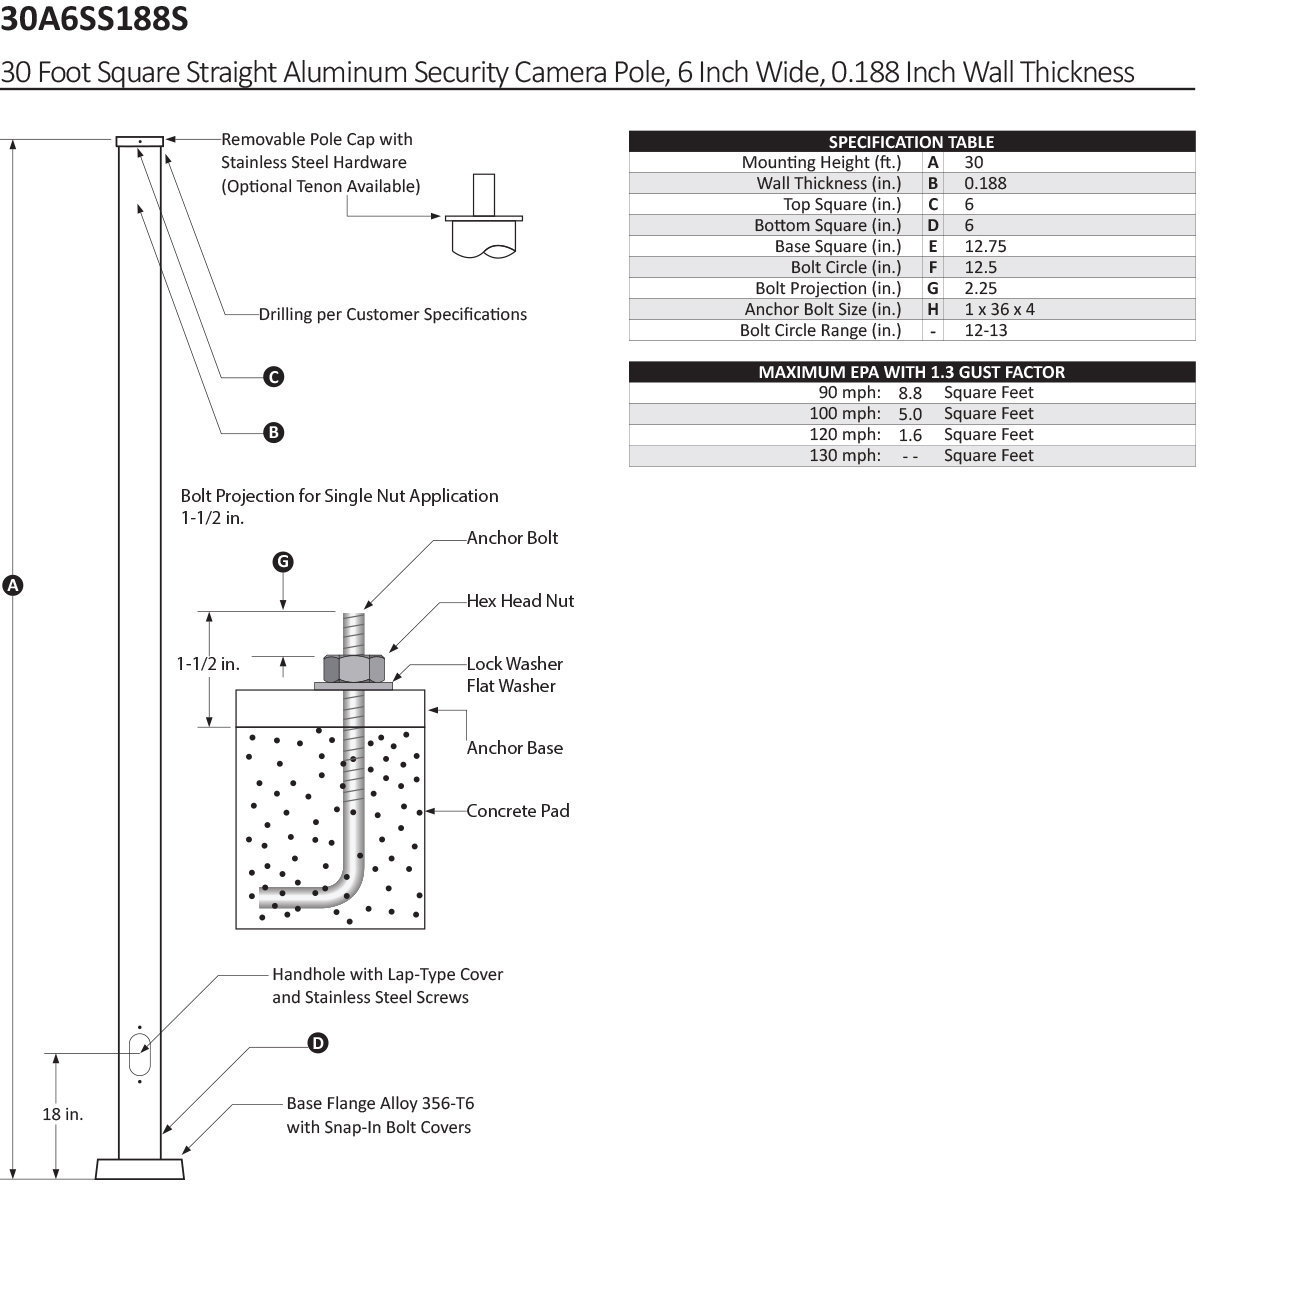 30 Foot Square Straight Aluminum Security Camera Pole, 6 Inch Wide, 0.188 Inch Wall Thickness